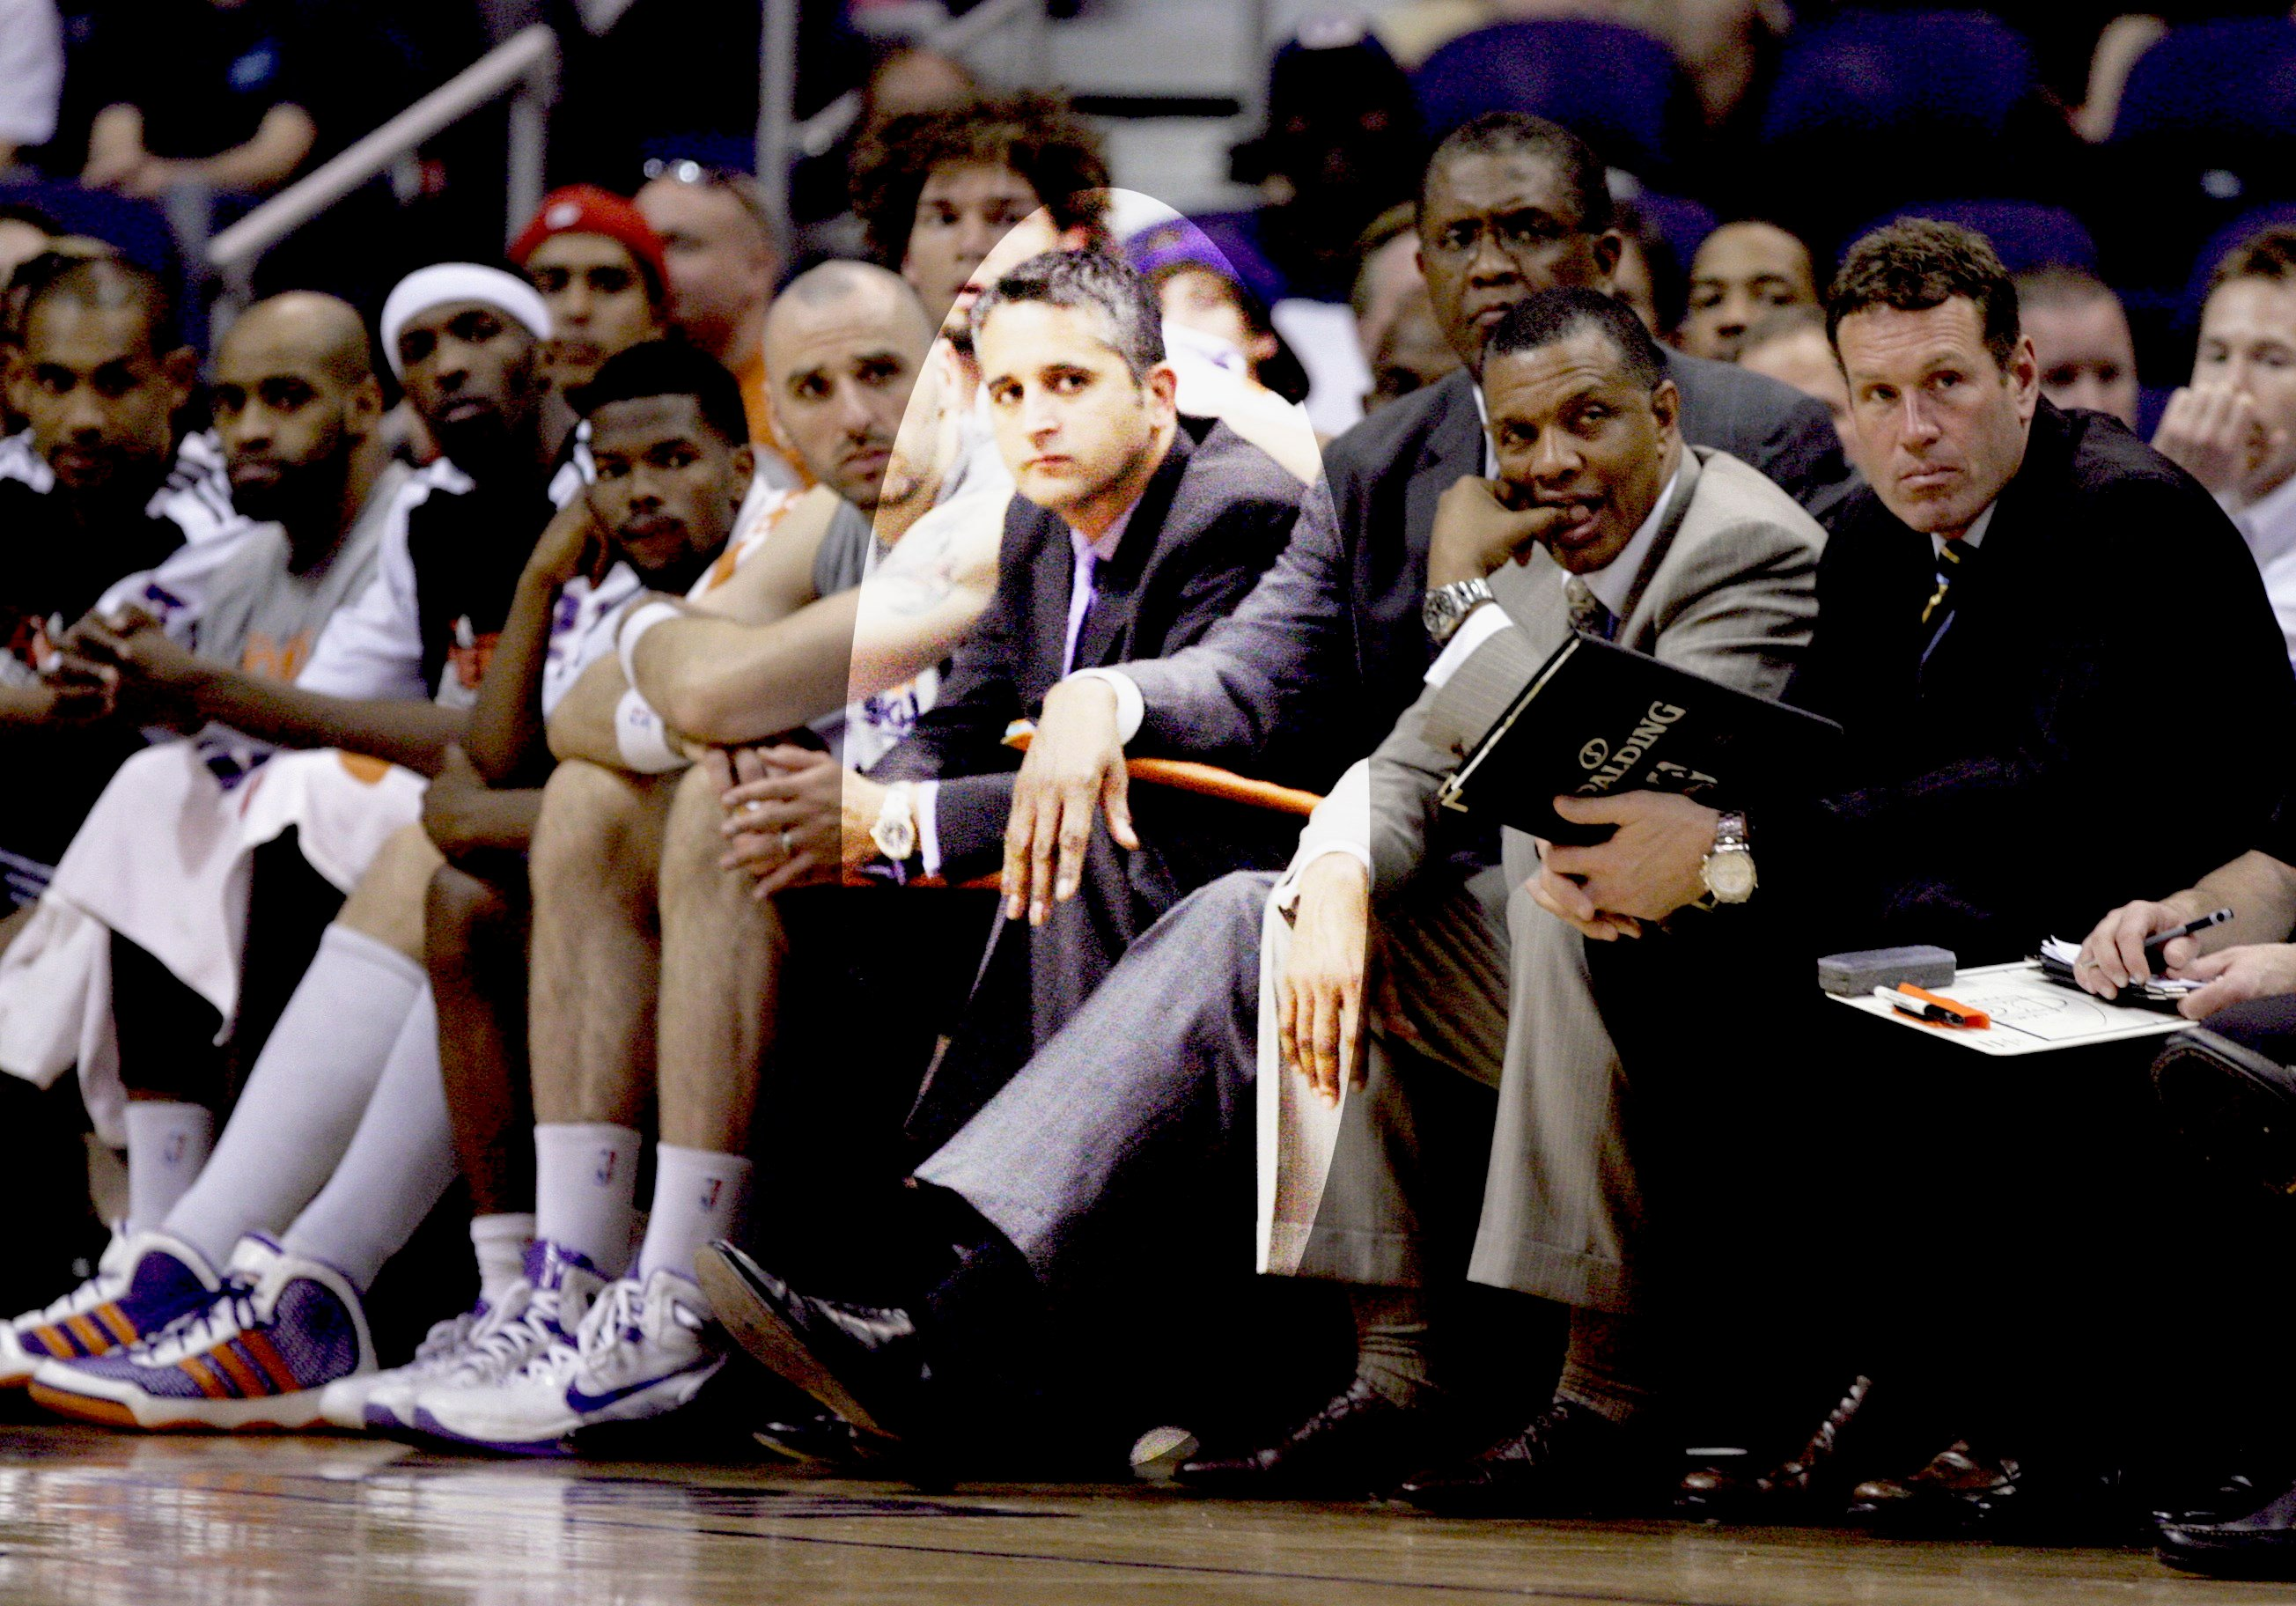 Igor Kokoskov, fourth from right, on the bench with former Phoenix Suns Alvin Gentry, second from the right, with assistant coaches Dan Marjerle, right, and Bill Cartwright, third from the right. (Source: AP Photo/Paul Connors)